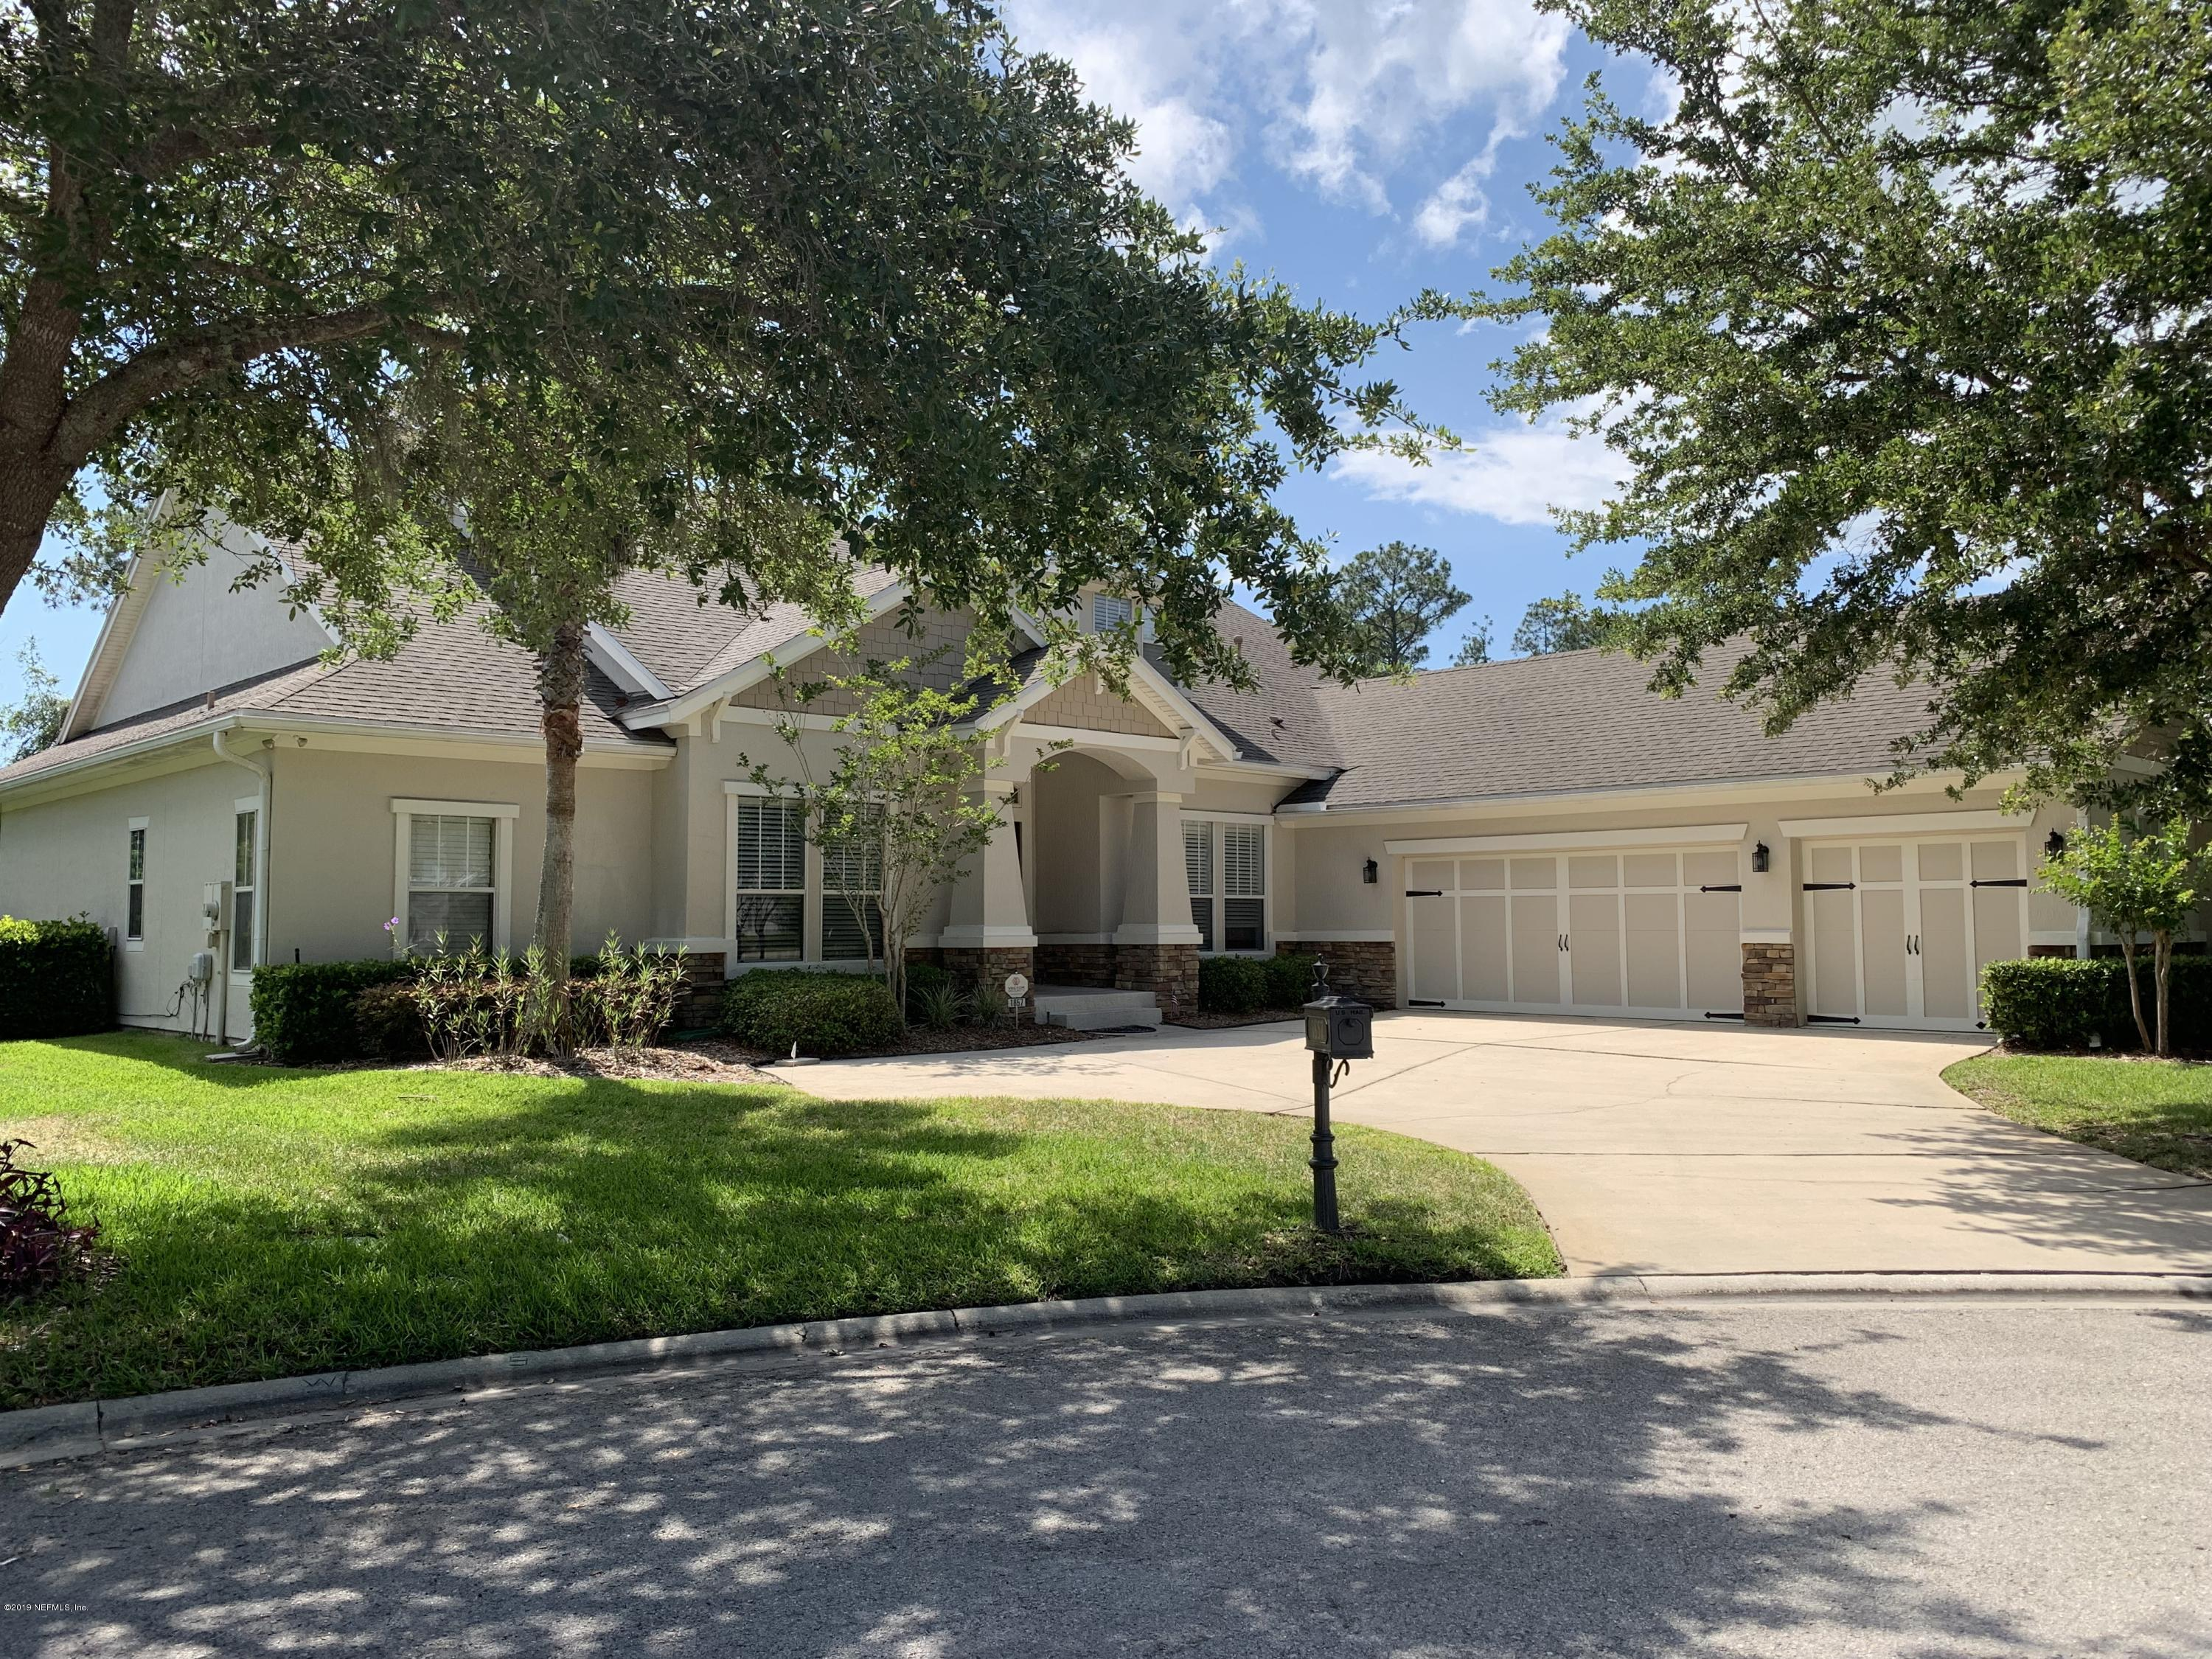 1857 FOREST GLEN, ST AUGUSTINE, FLORIDA 32092, 5 Bedrooms Bedrooms, ,4 BathroomsBathrooms,Residential - single family,For sale,FOREST GLEN,1000246